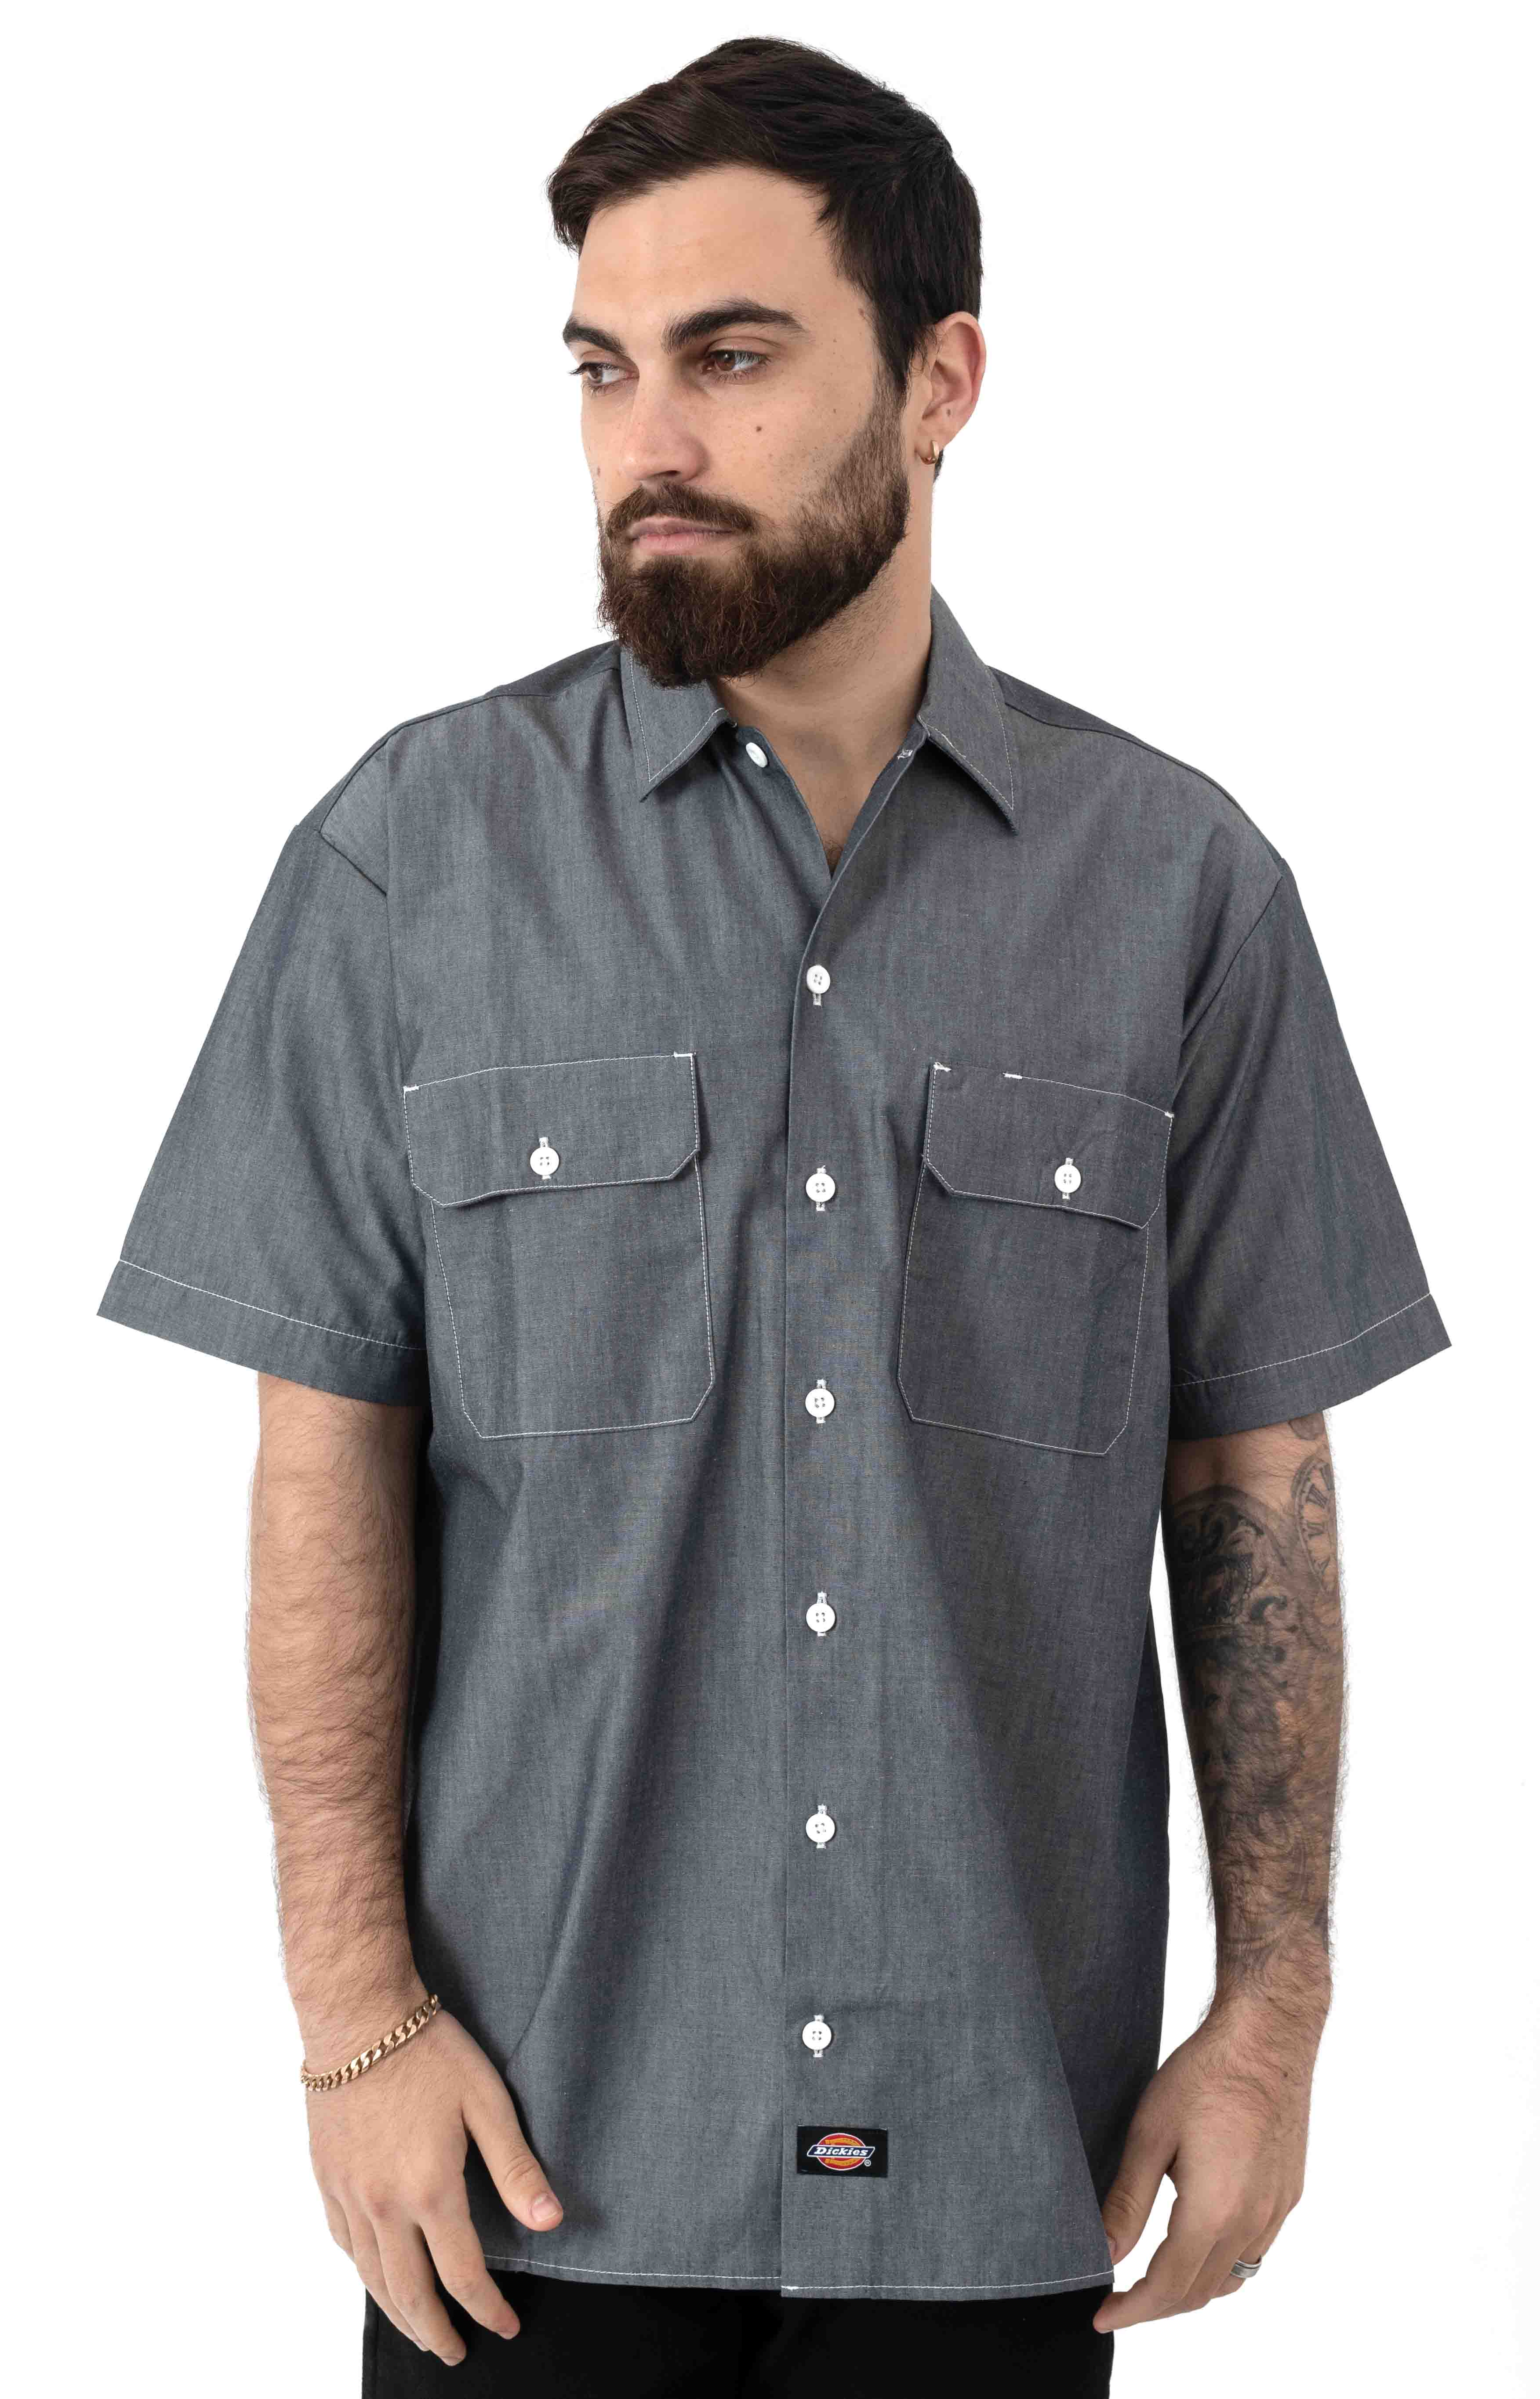 (WS509NVC) Relaxed Fit Short Sleeve Chambray Shirt - Navy Chambray 2